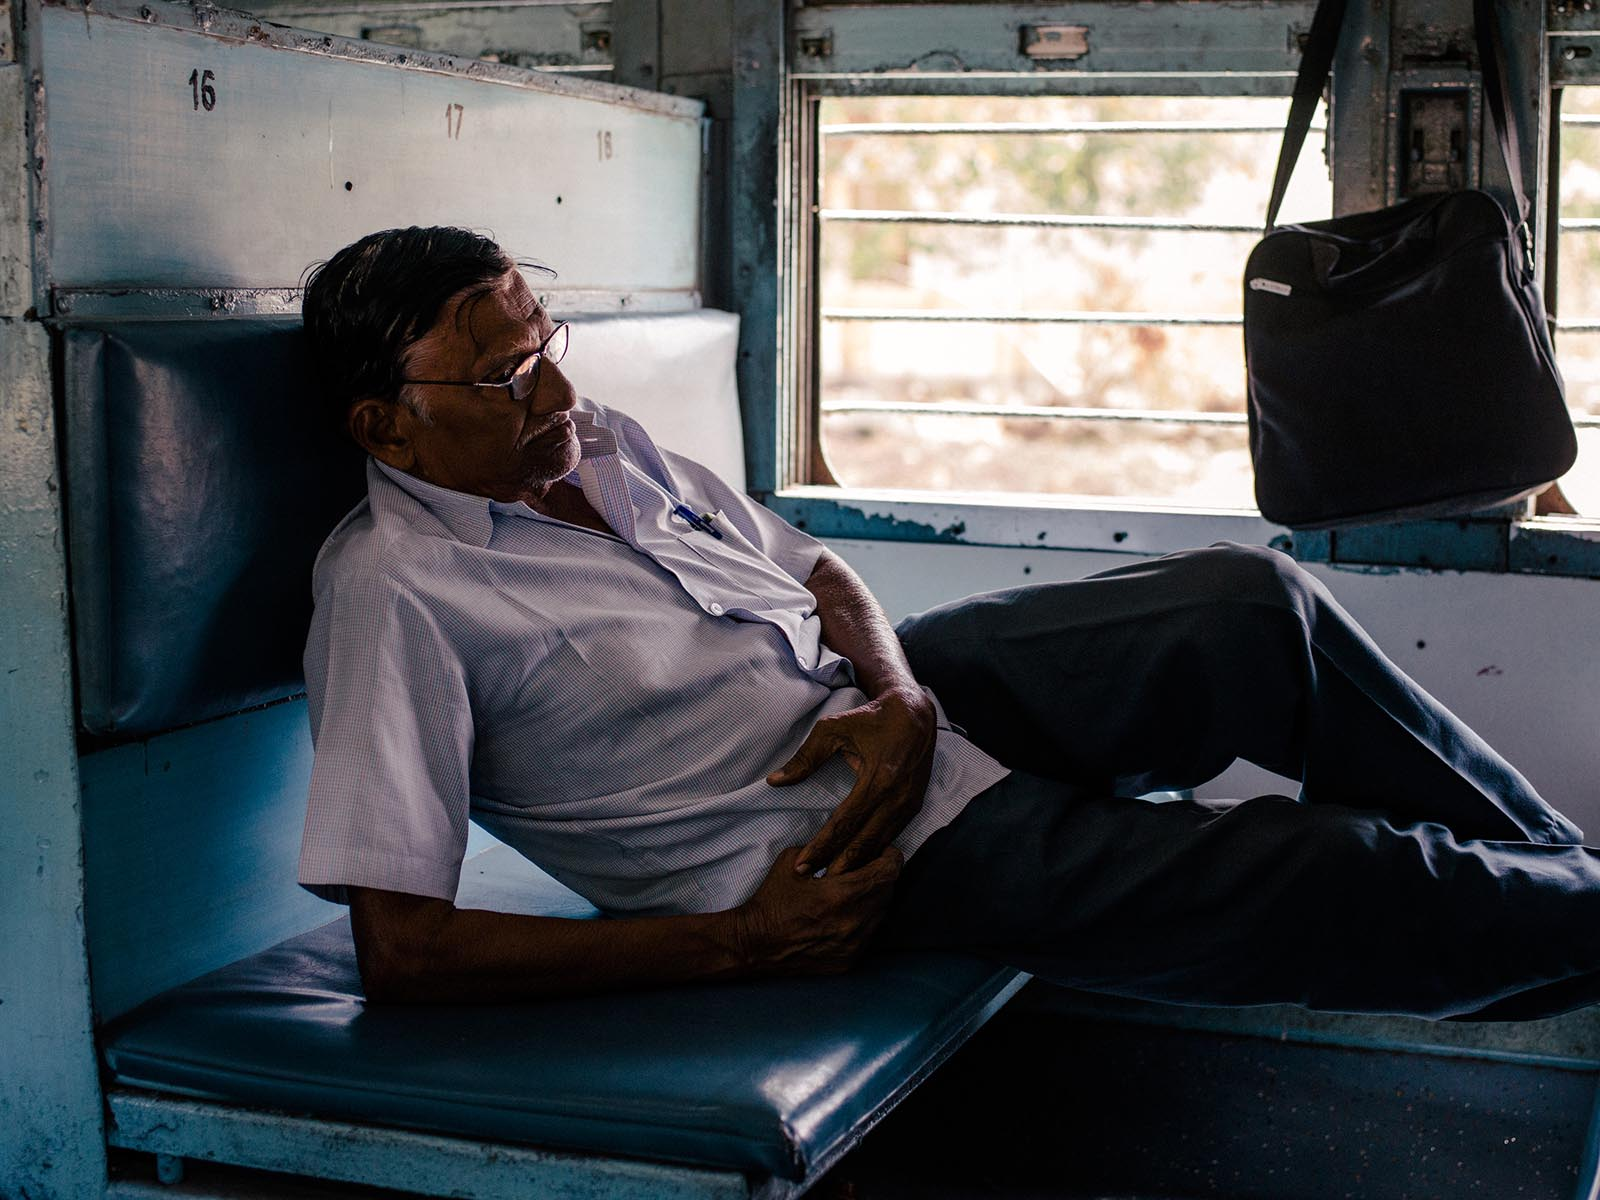 On a train from Madurai to Trichy.